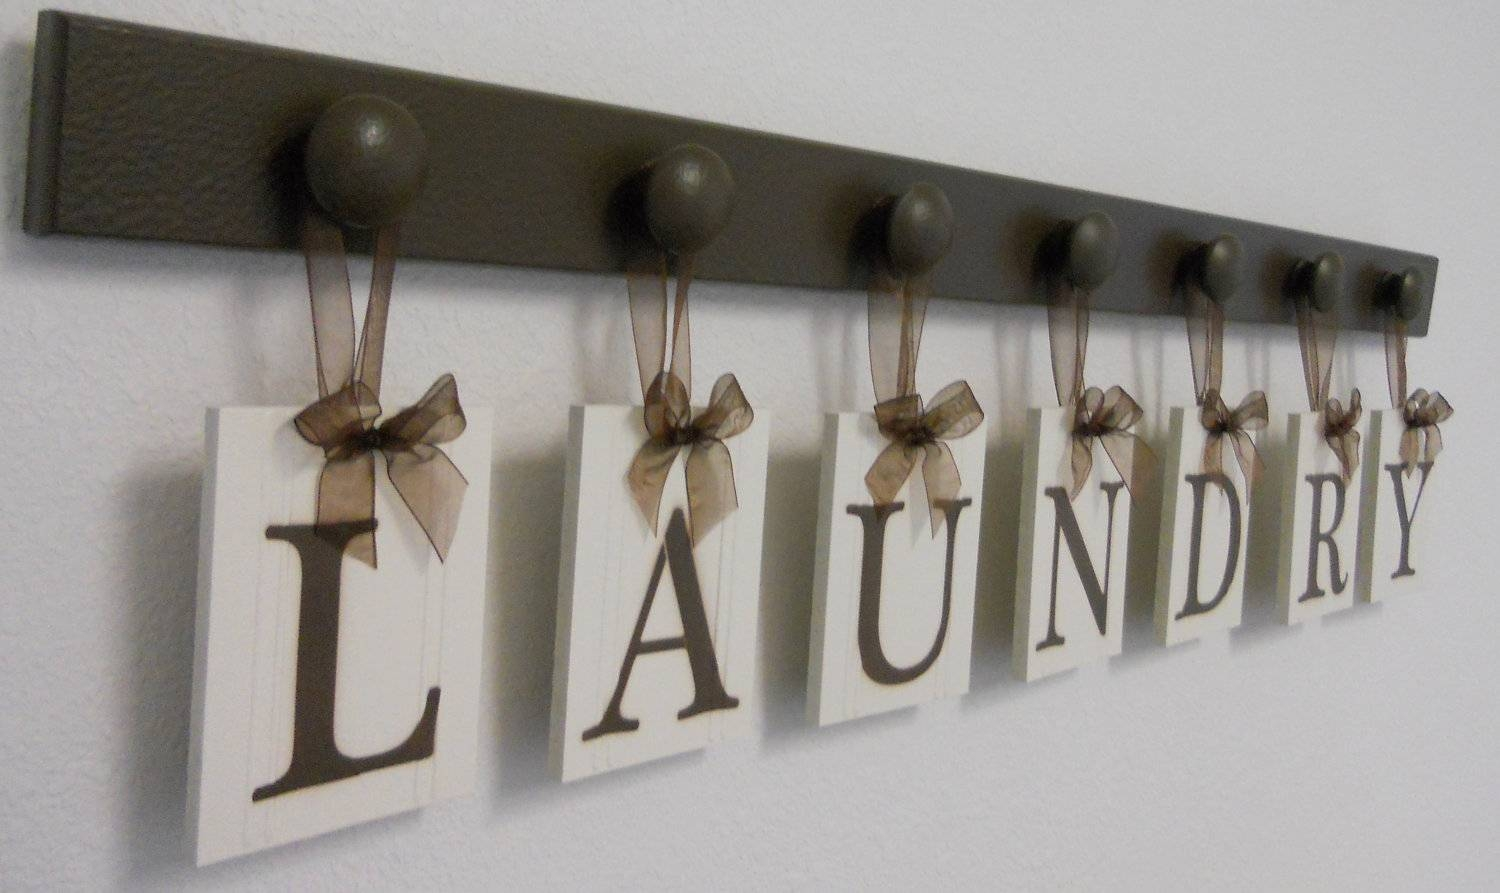 Laundry Room Decor Laundry Sign Laundry Room Sign Within Most Recent Laundry Room Wall Art Decors (View 15 of 25)